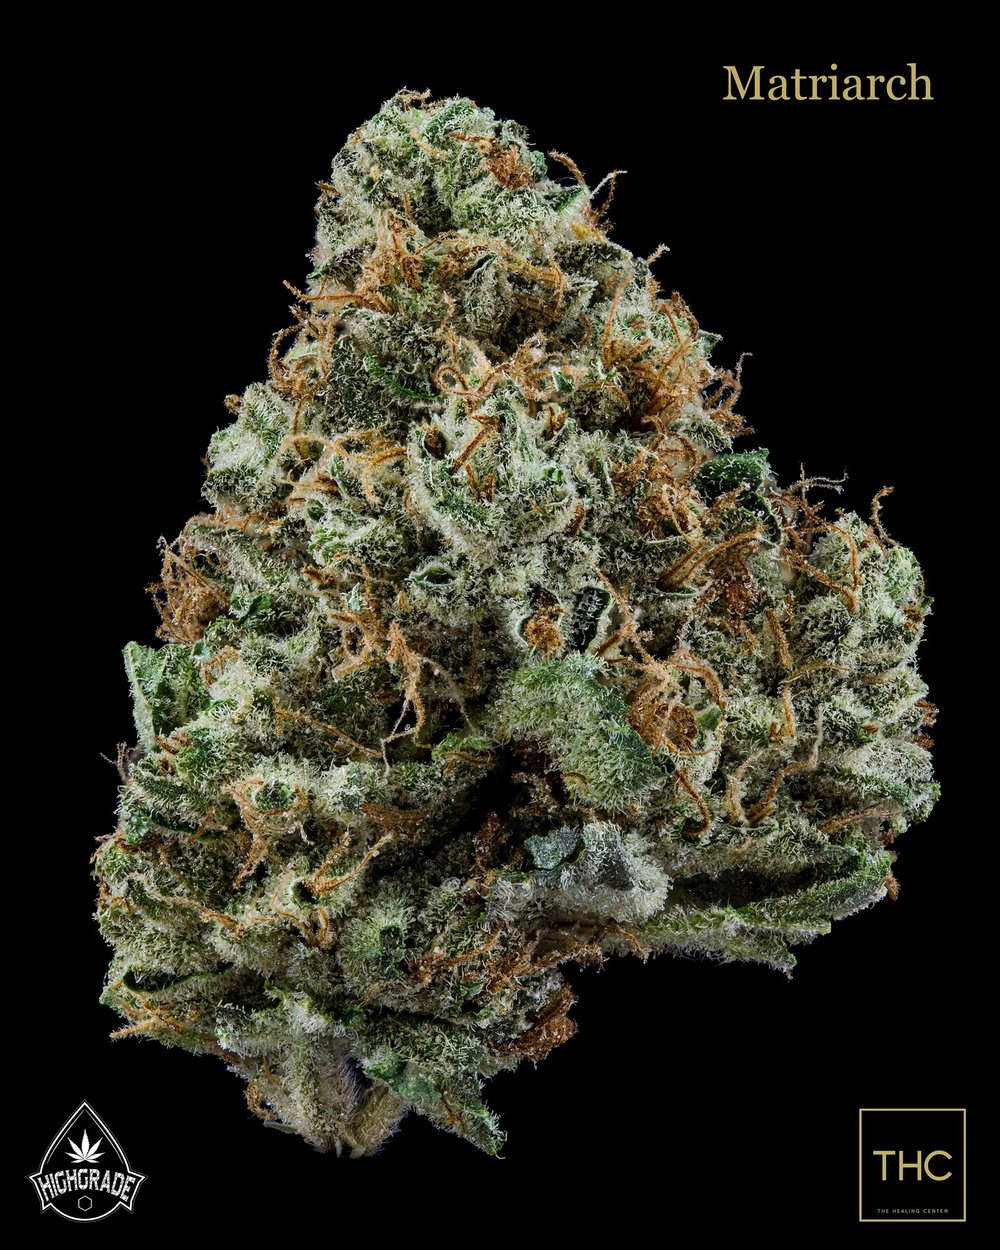 Matriarch Highgrade THC.jpg